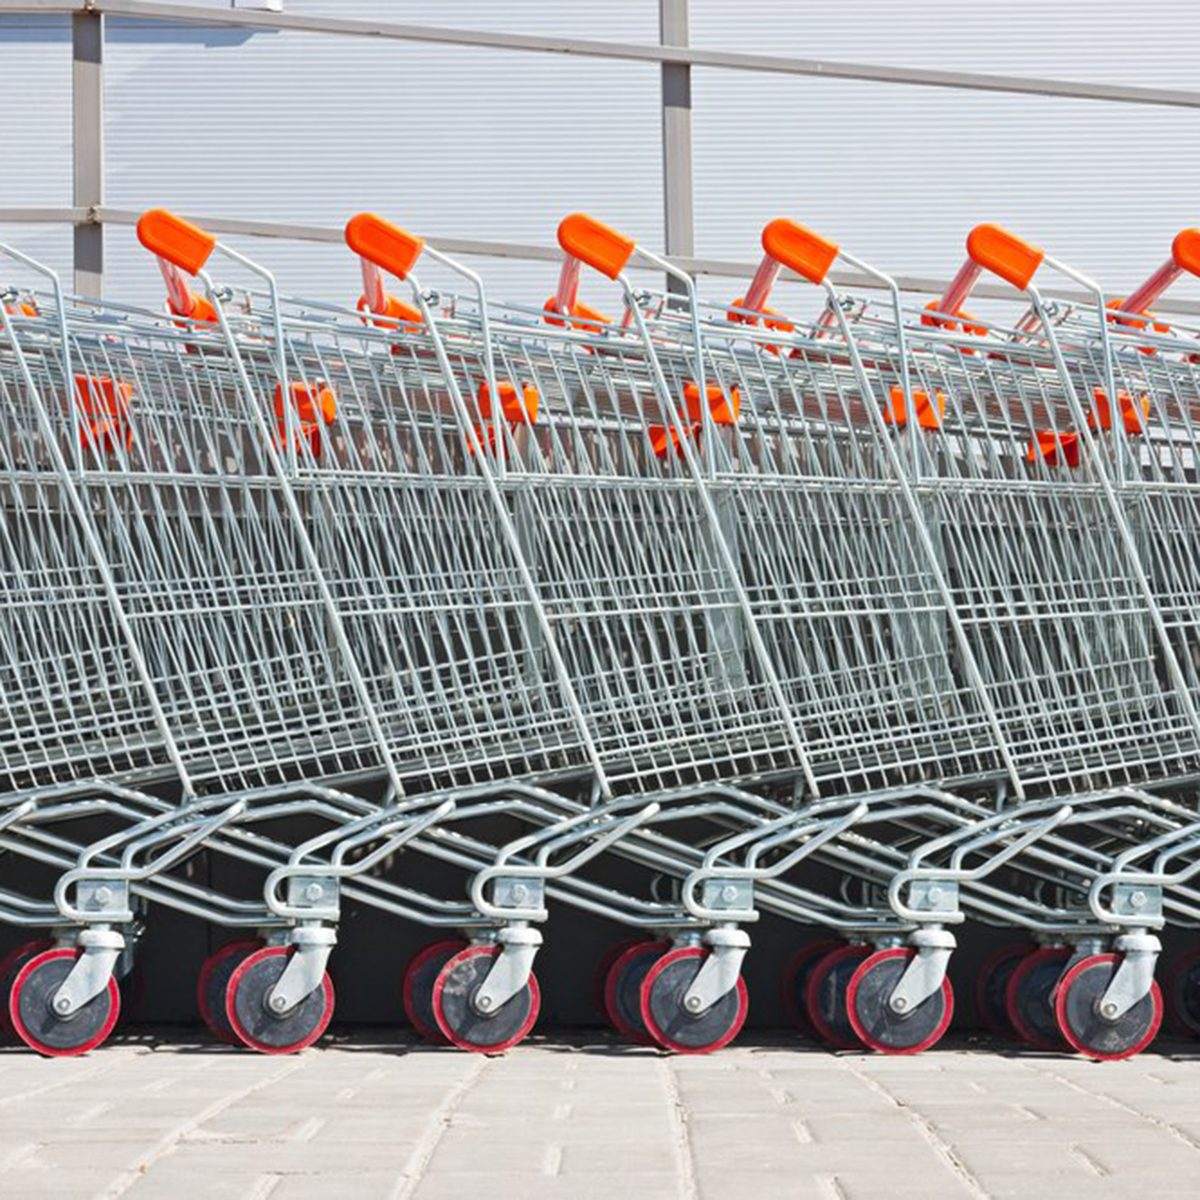 Shopping carts stacked together